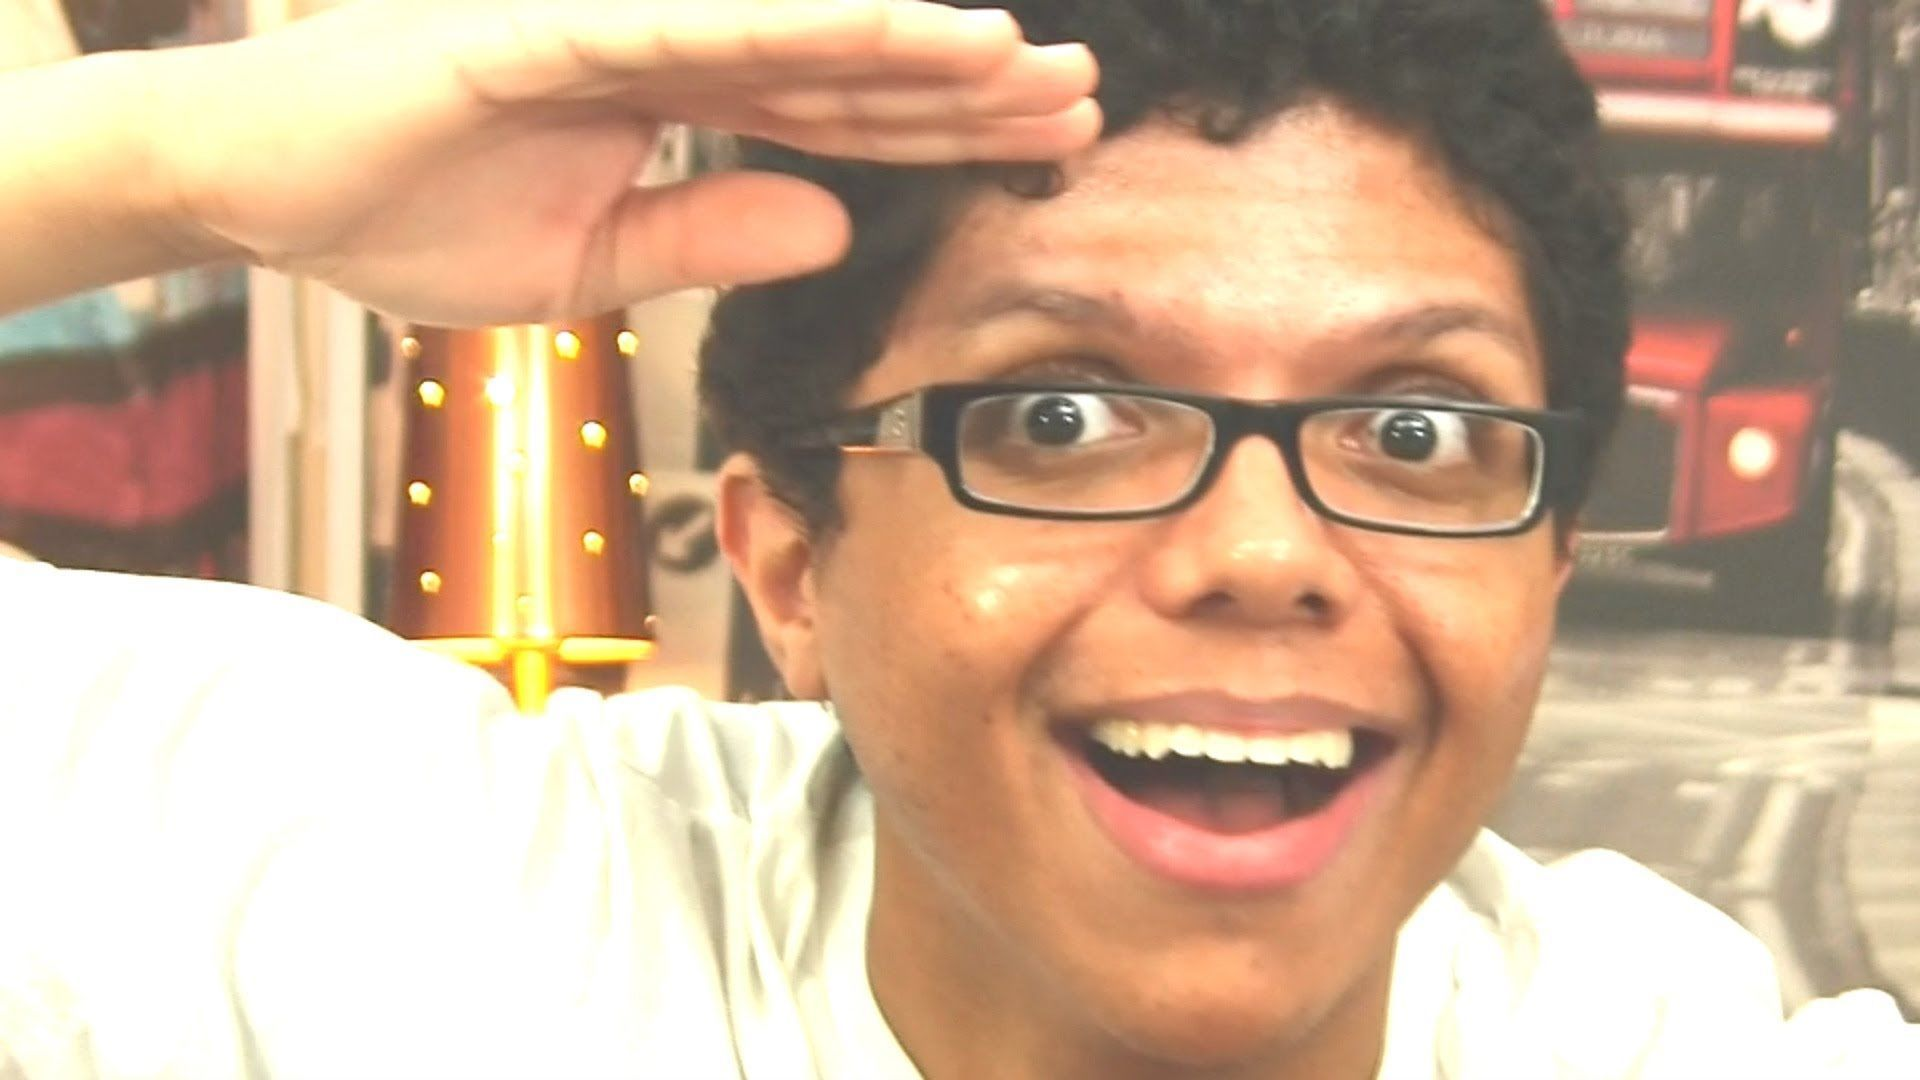 Best 25+ Tay zonday ideas on Pinterest | Chocolate rain lyrics ...